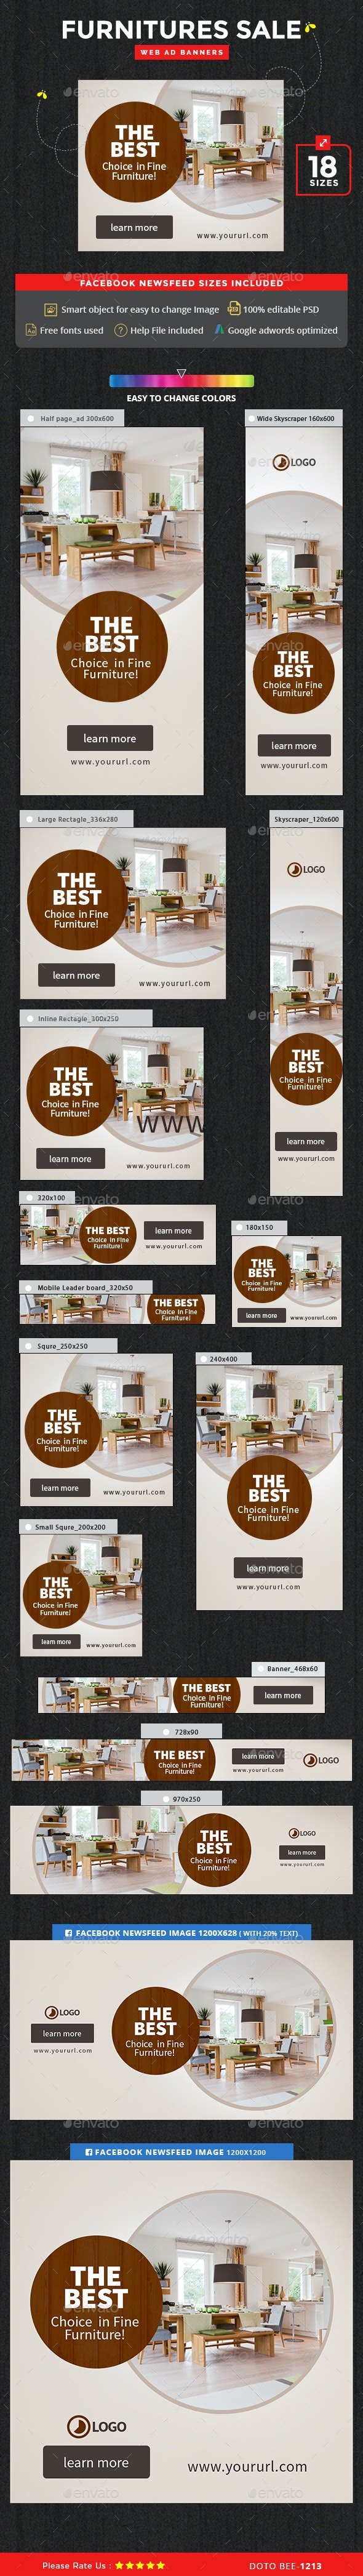 Furnitures Sale Banners - Banners & Ads Web Elements